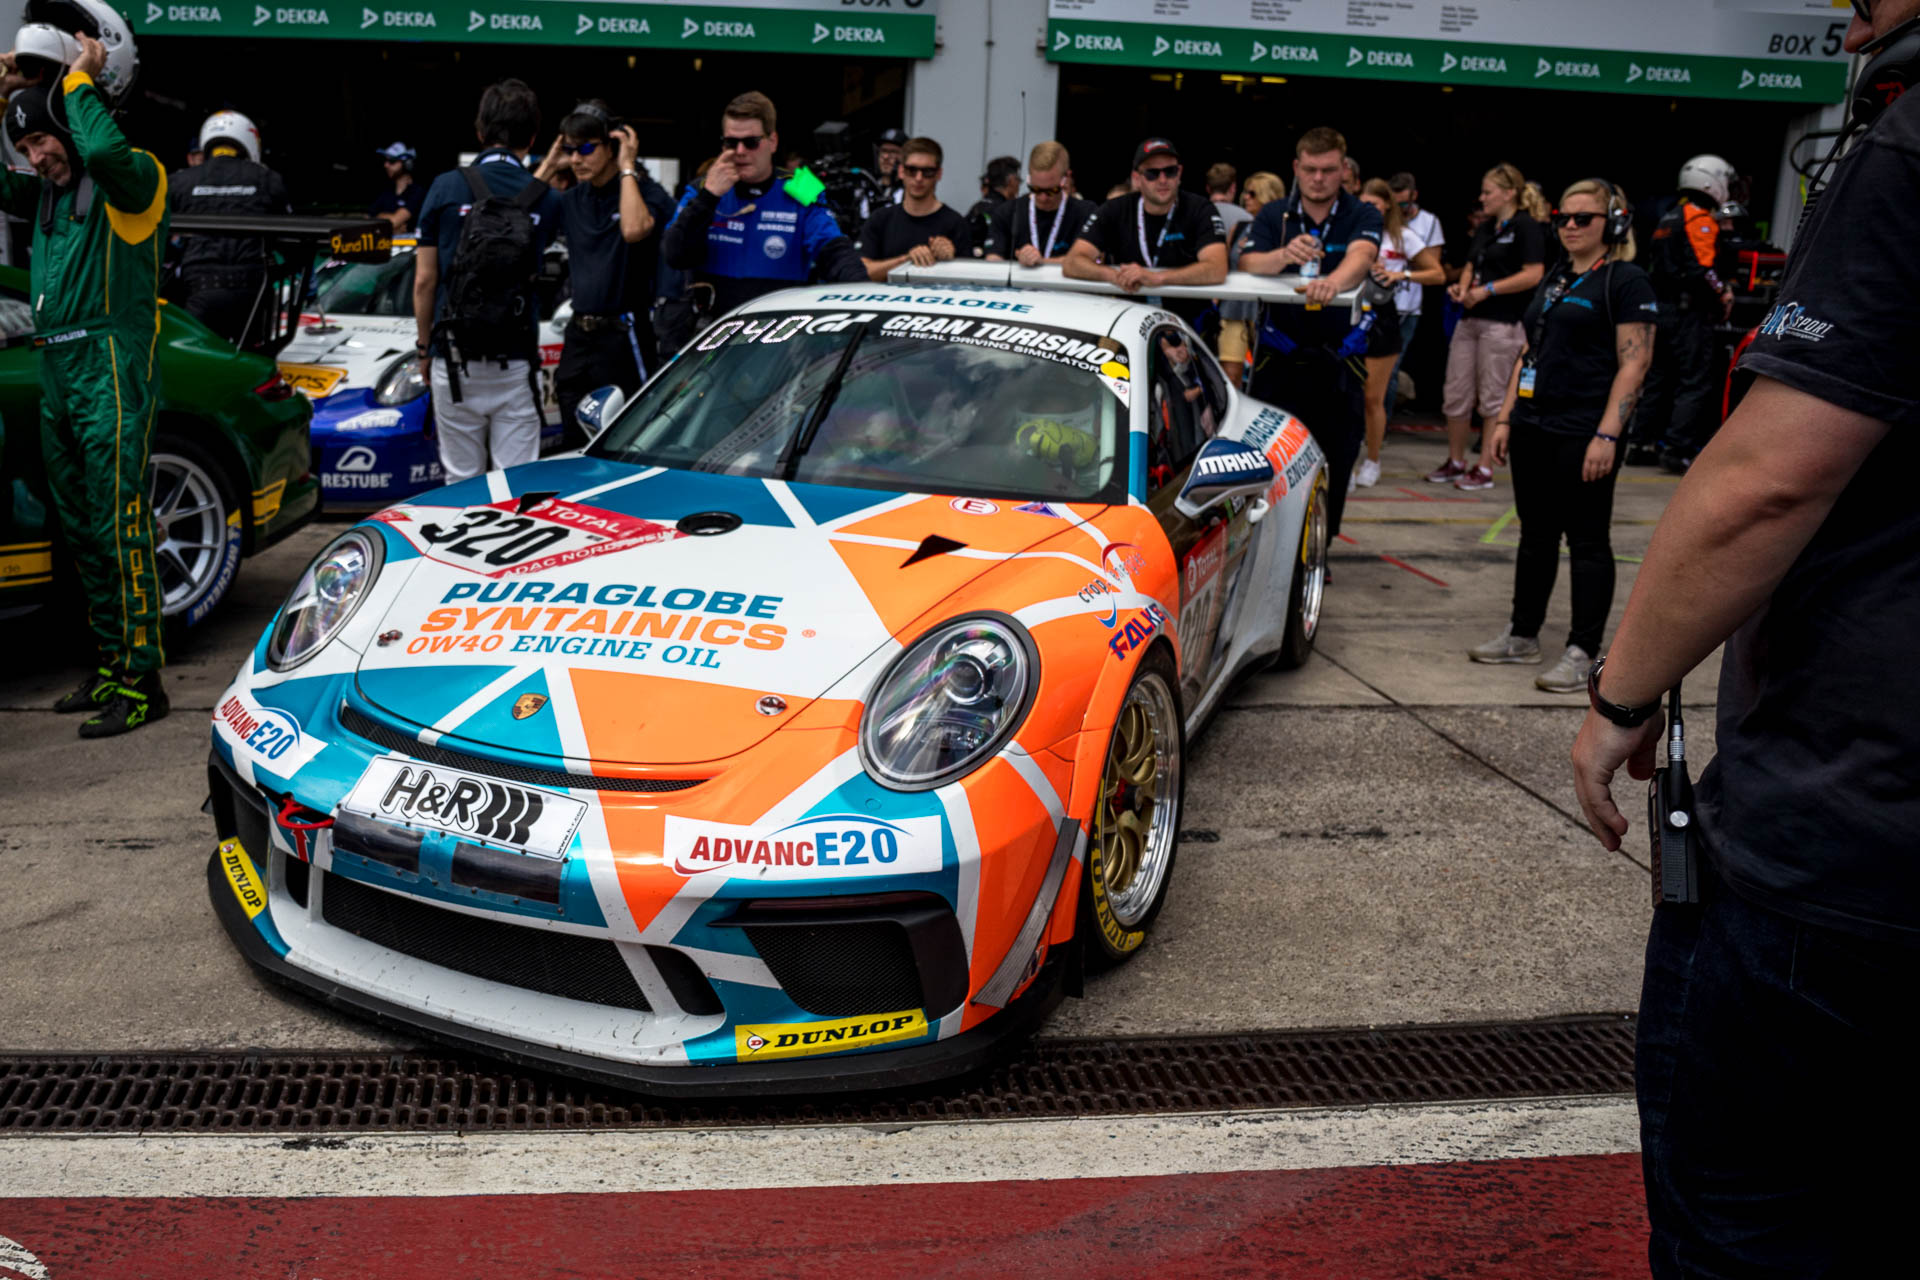 Team CARE FOR CLIMATE: 24h-Rennen Nürburgring 2019